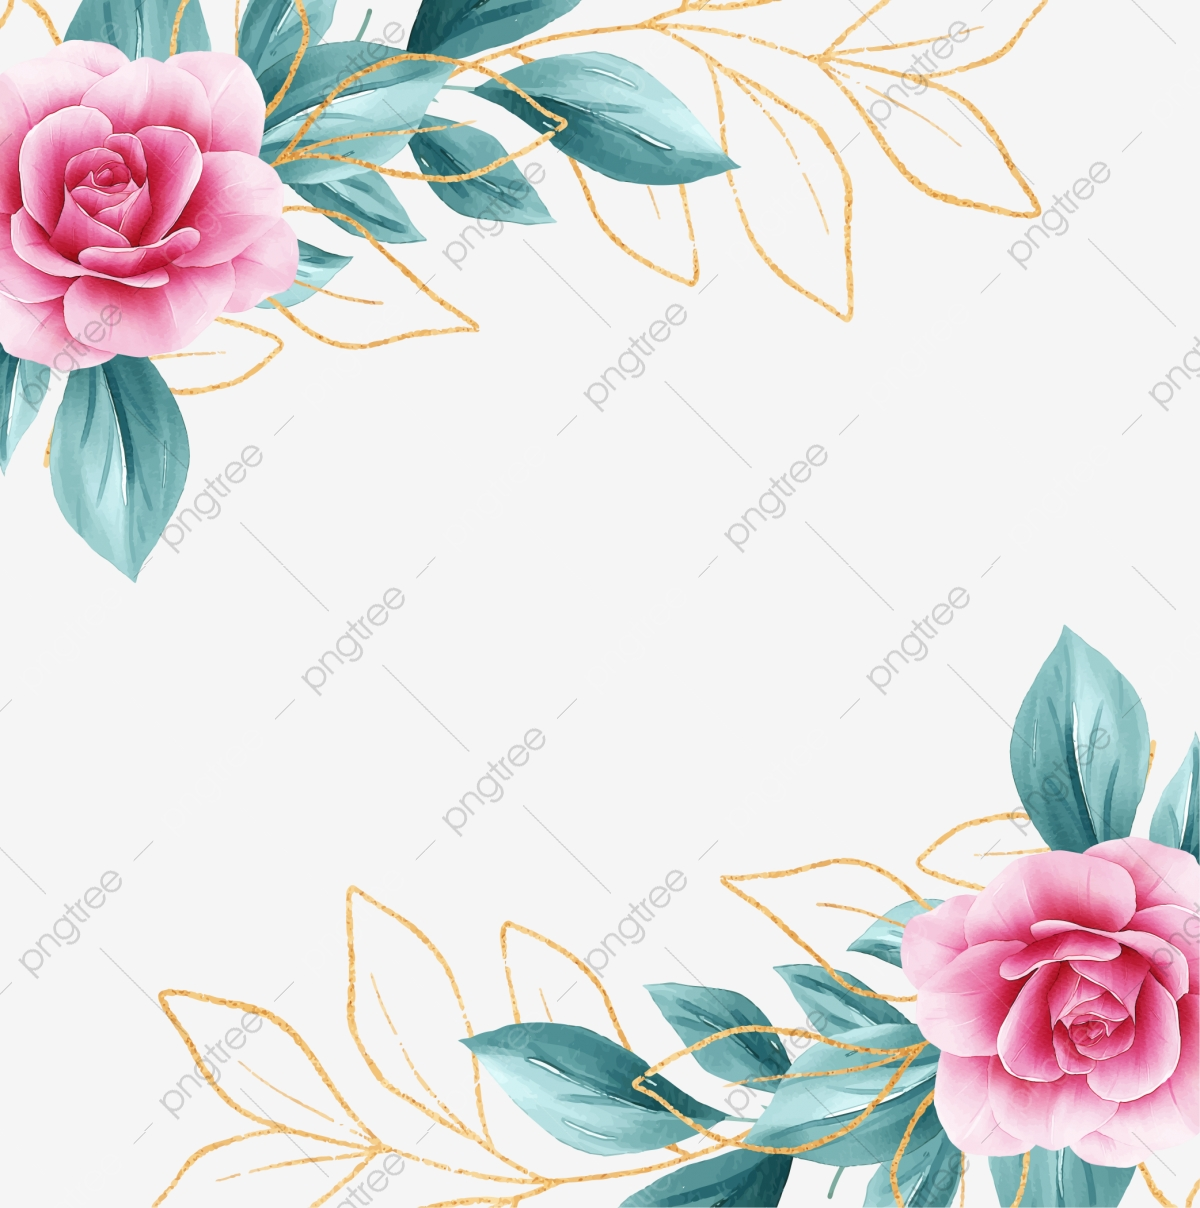 Square Floral Frame With Watercolor Flowers Border And Outlined